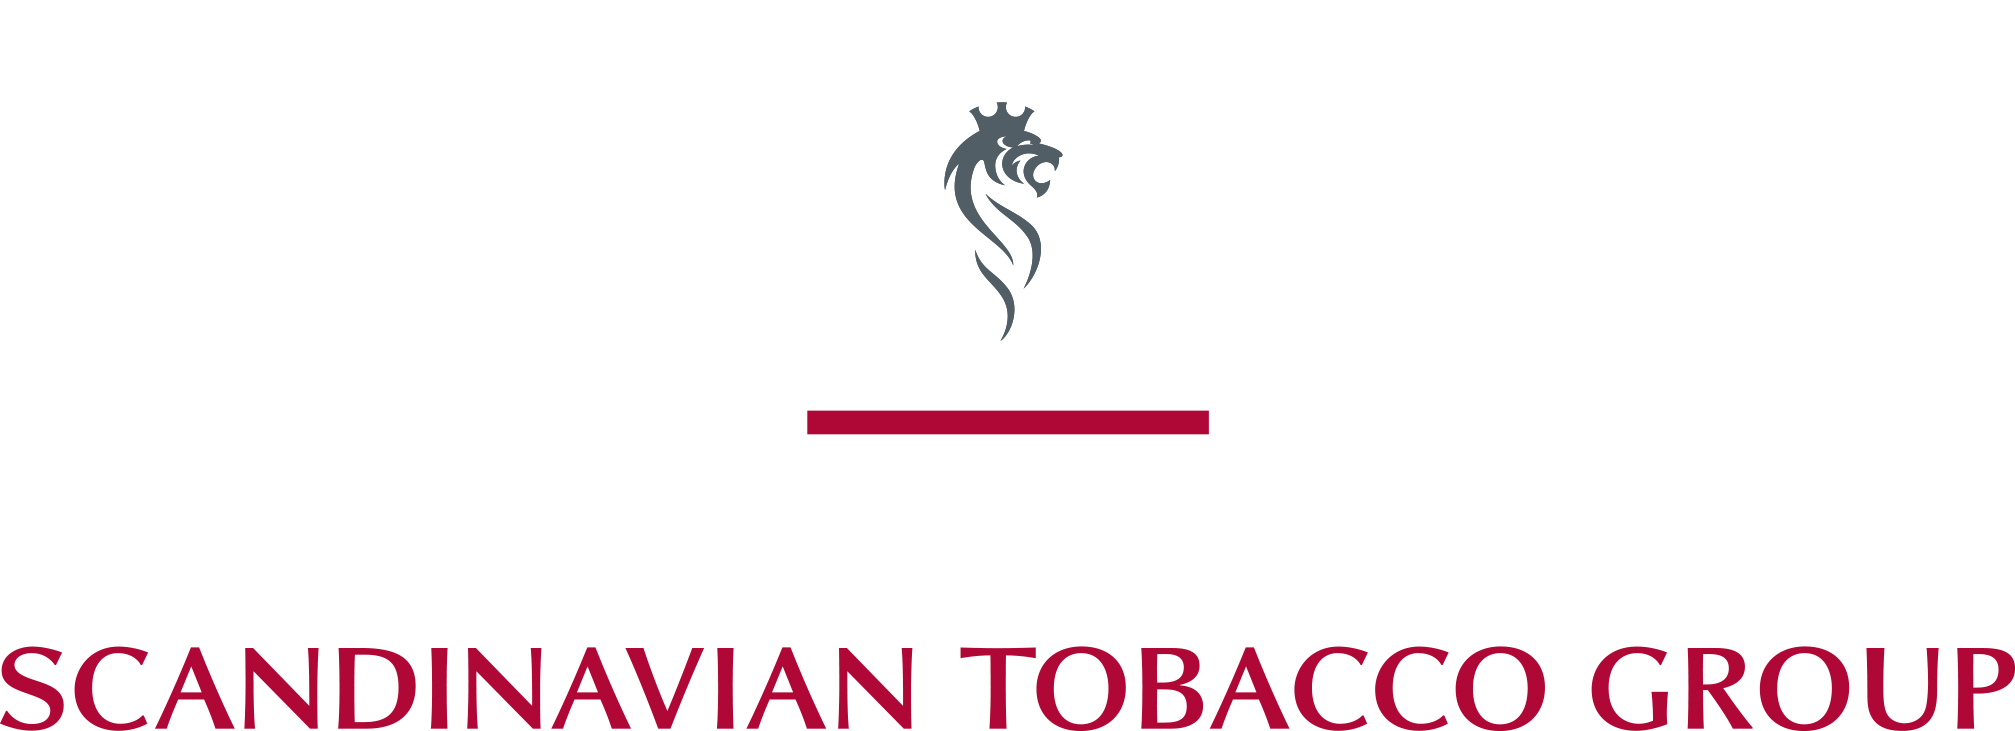 logo van Scandinavian Tabacco Group